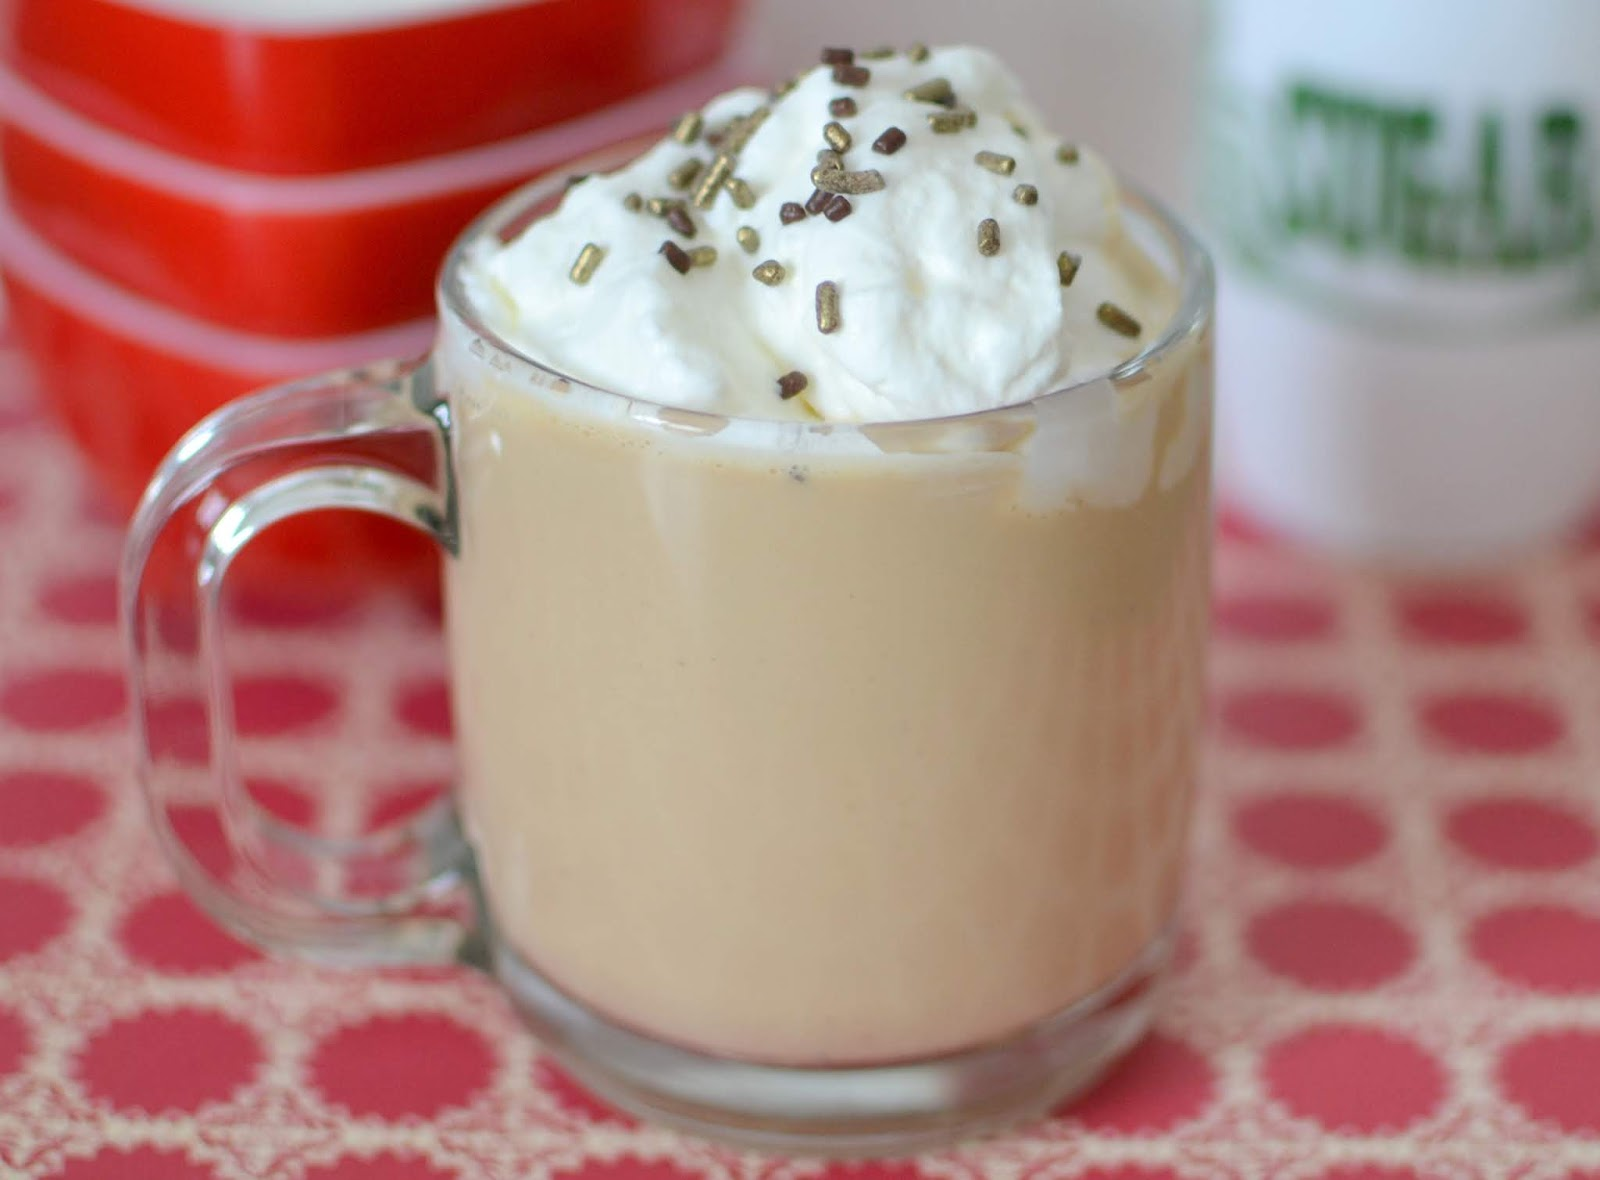 Make your eggnog extra special with some coffee and whipped cream! So perfect for any Christmas celebration or holiday party! Add your favorite liquor for a delicious adult drink!